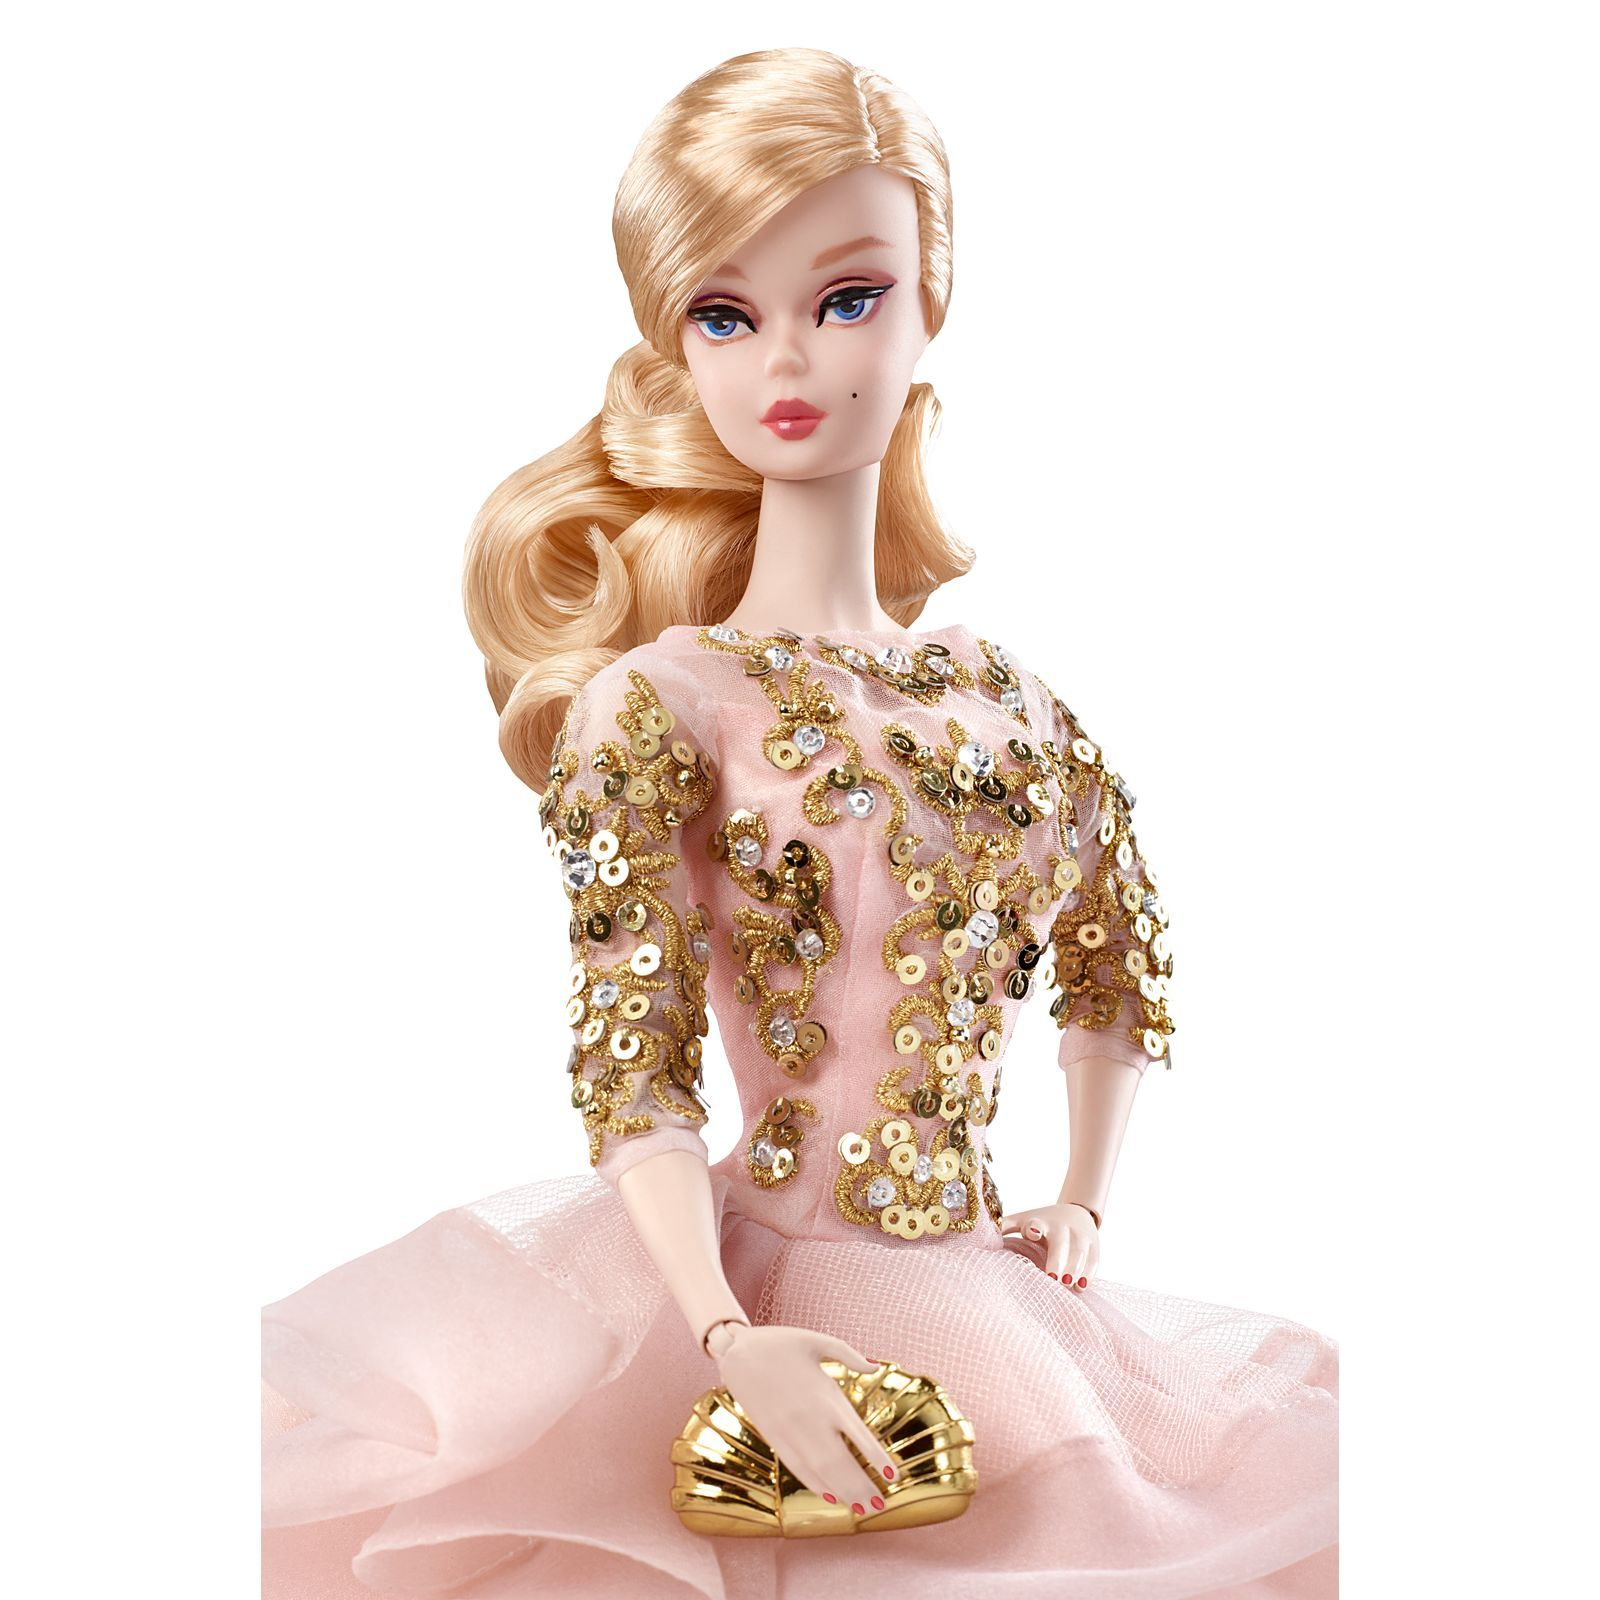 New Barbie 2017 Andy Warhol Superstar Blonde Model Muse Articulated #3 ~ MIB!